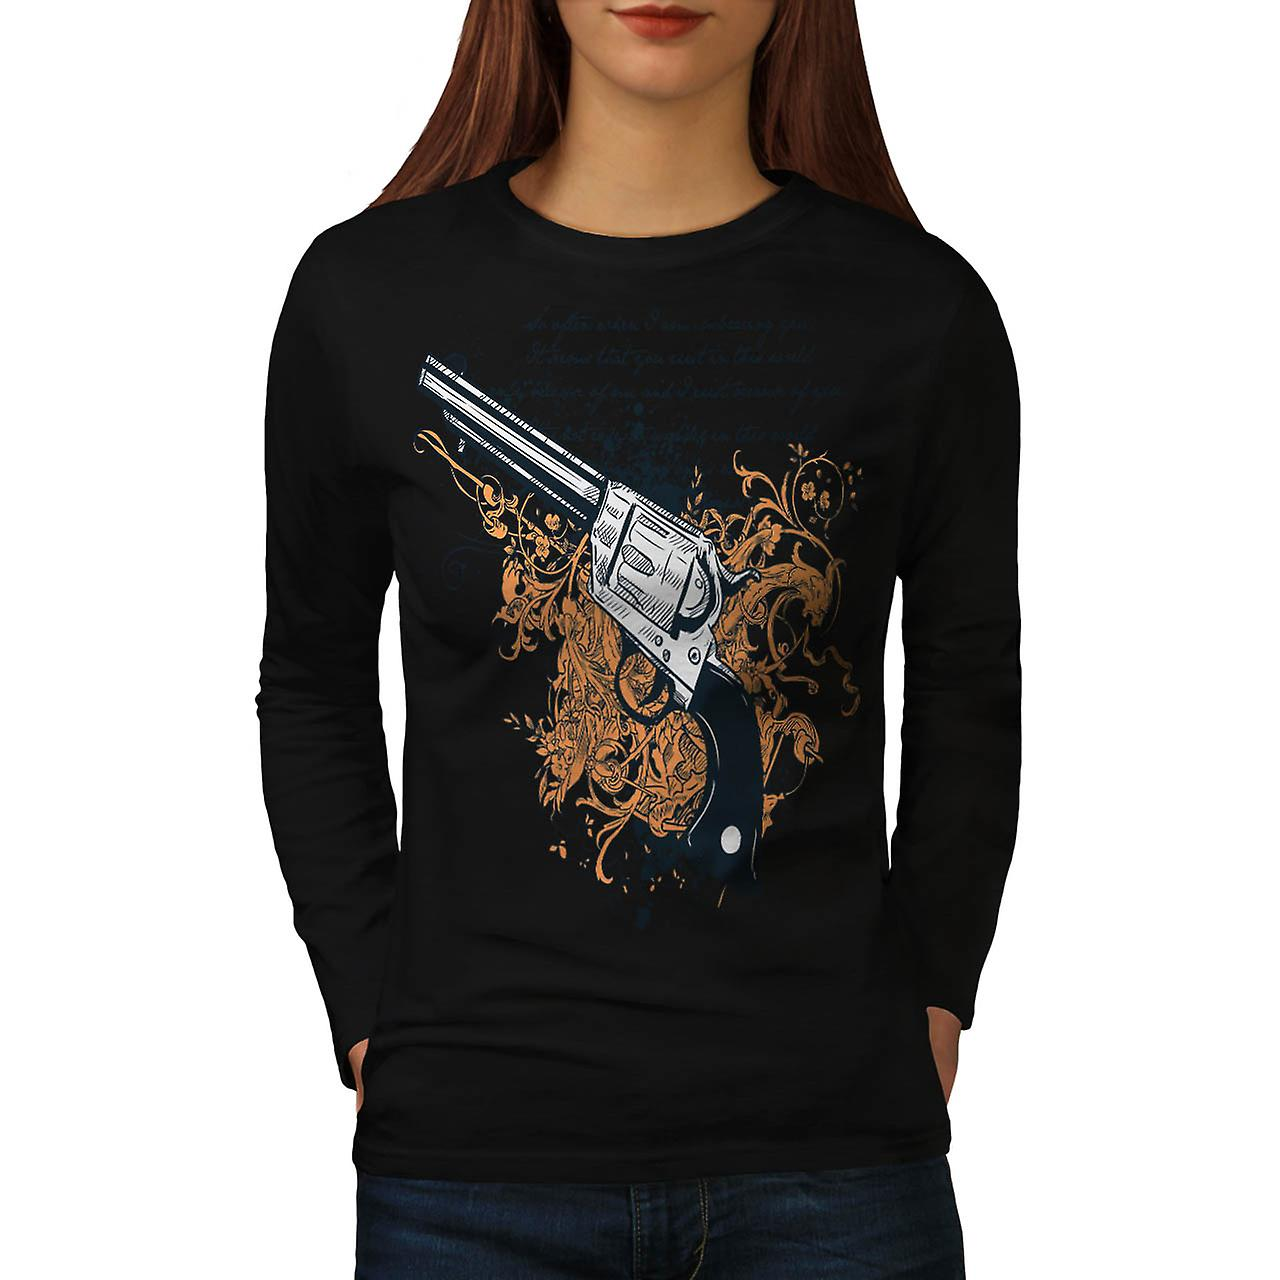 Deadly Weapon Pistol Gun Battle Women Black Long Sleeve T-shirt | Wellcoda